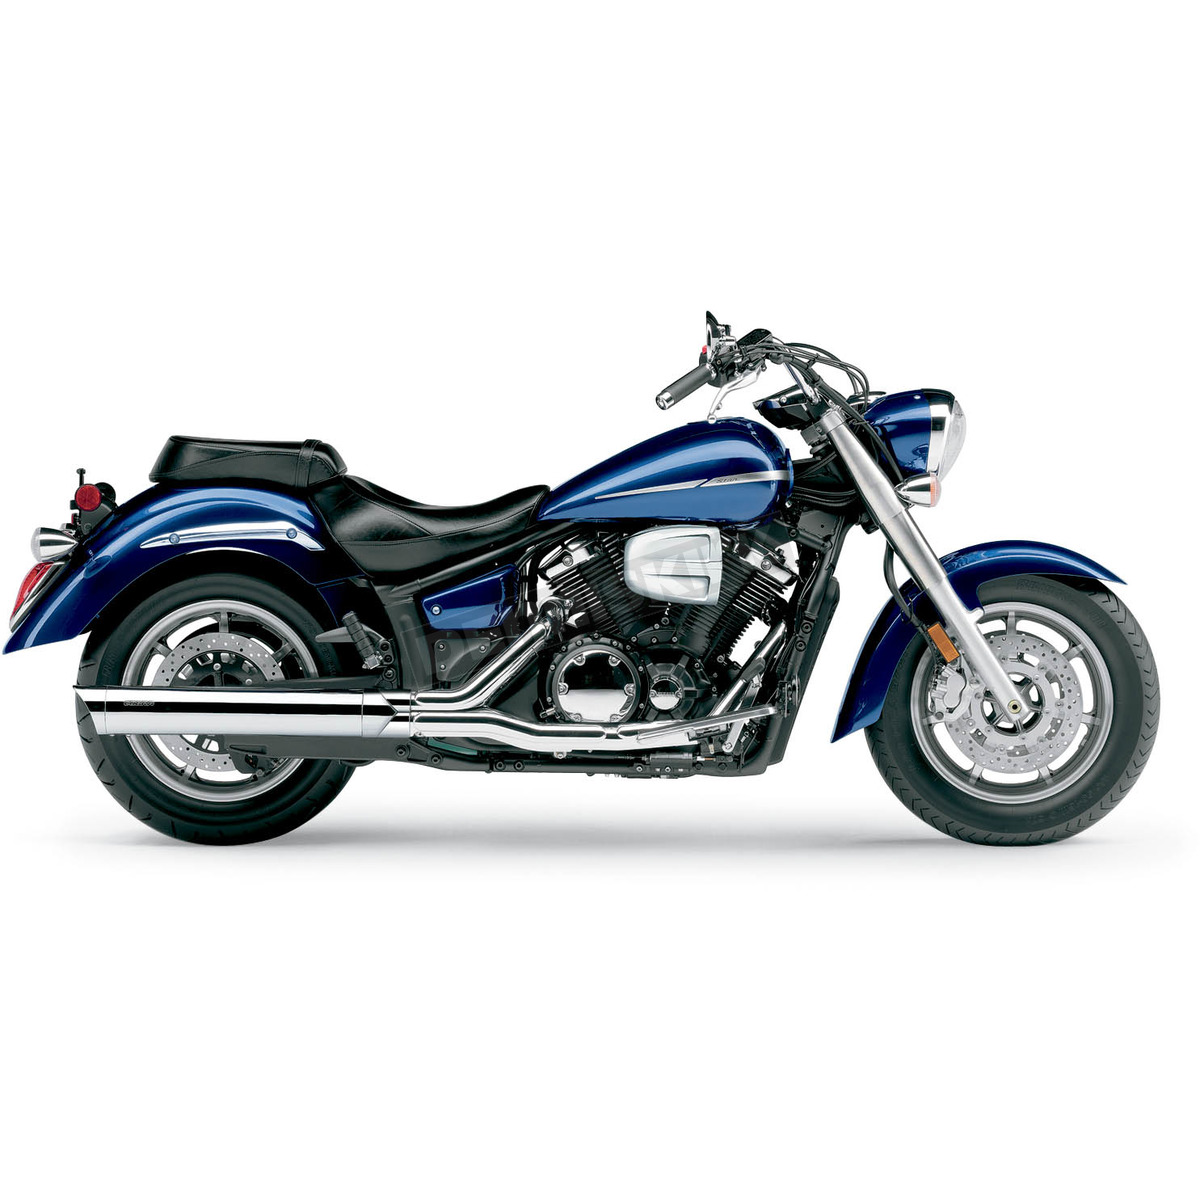 Cobra 4 in. Scalloped Slip-On Mufflers - 2275